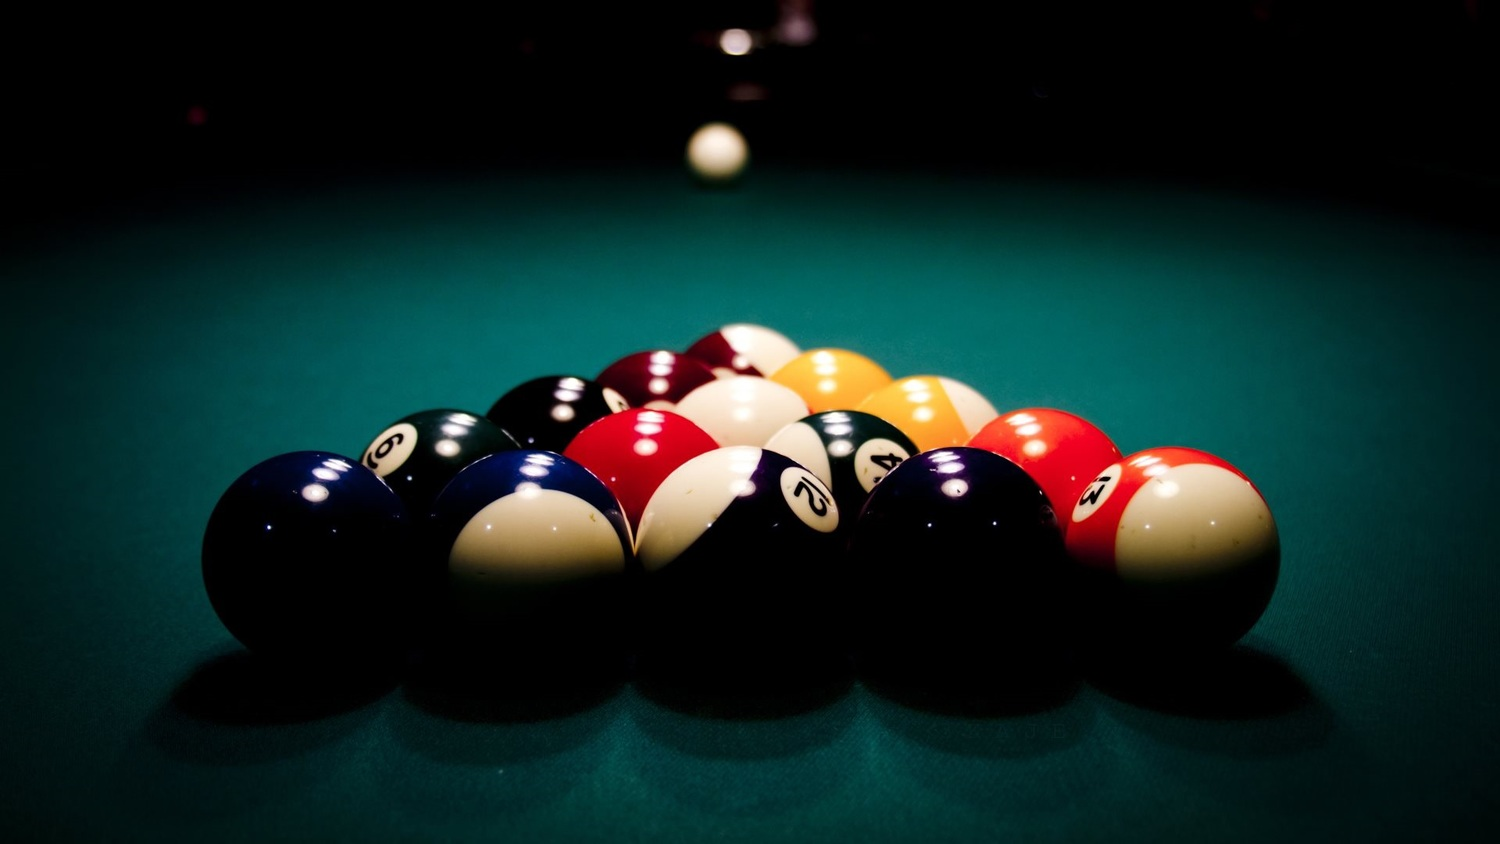 Billiards And Brews   Knoxville Billiards And Darts